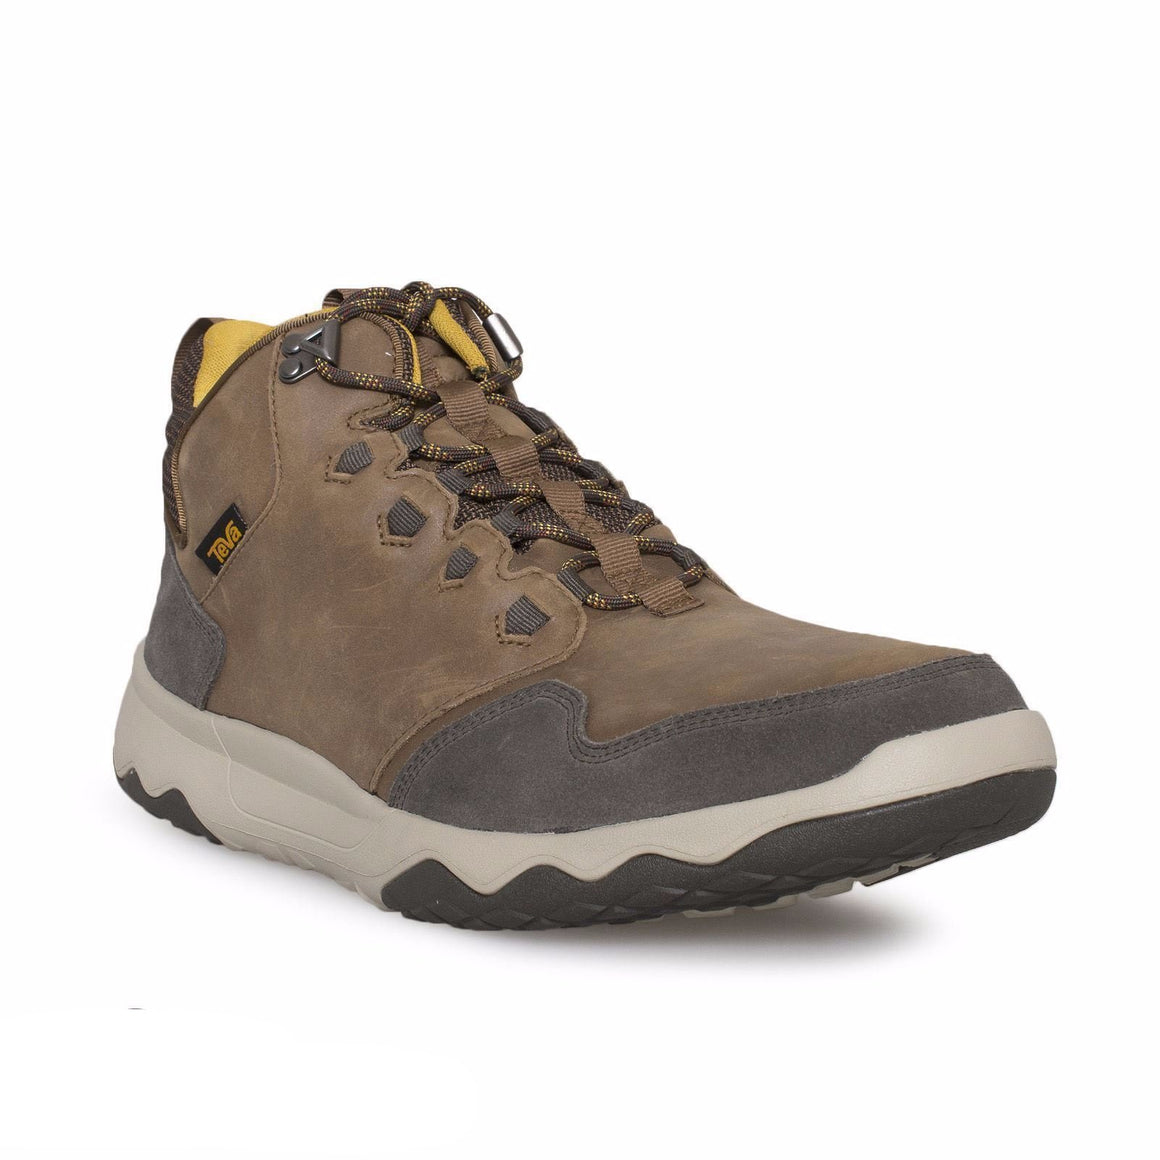 Teva Arrowood Lux Mid WP Brown Boots